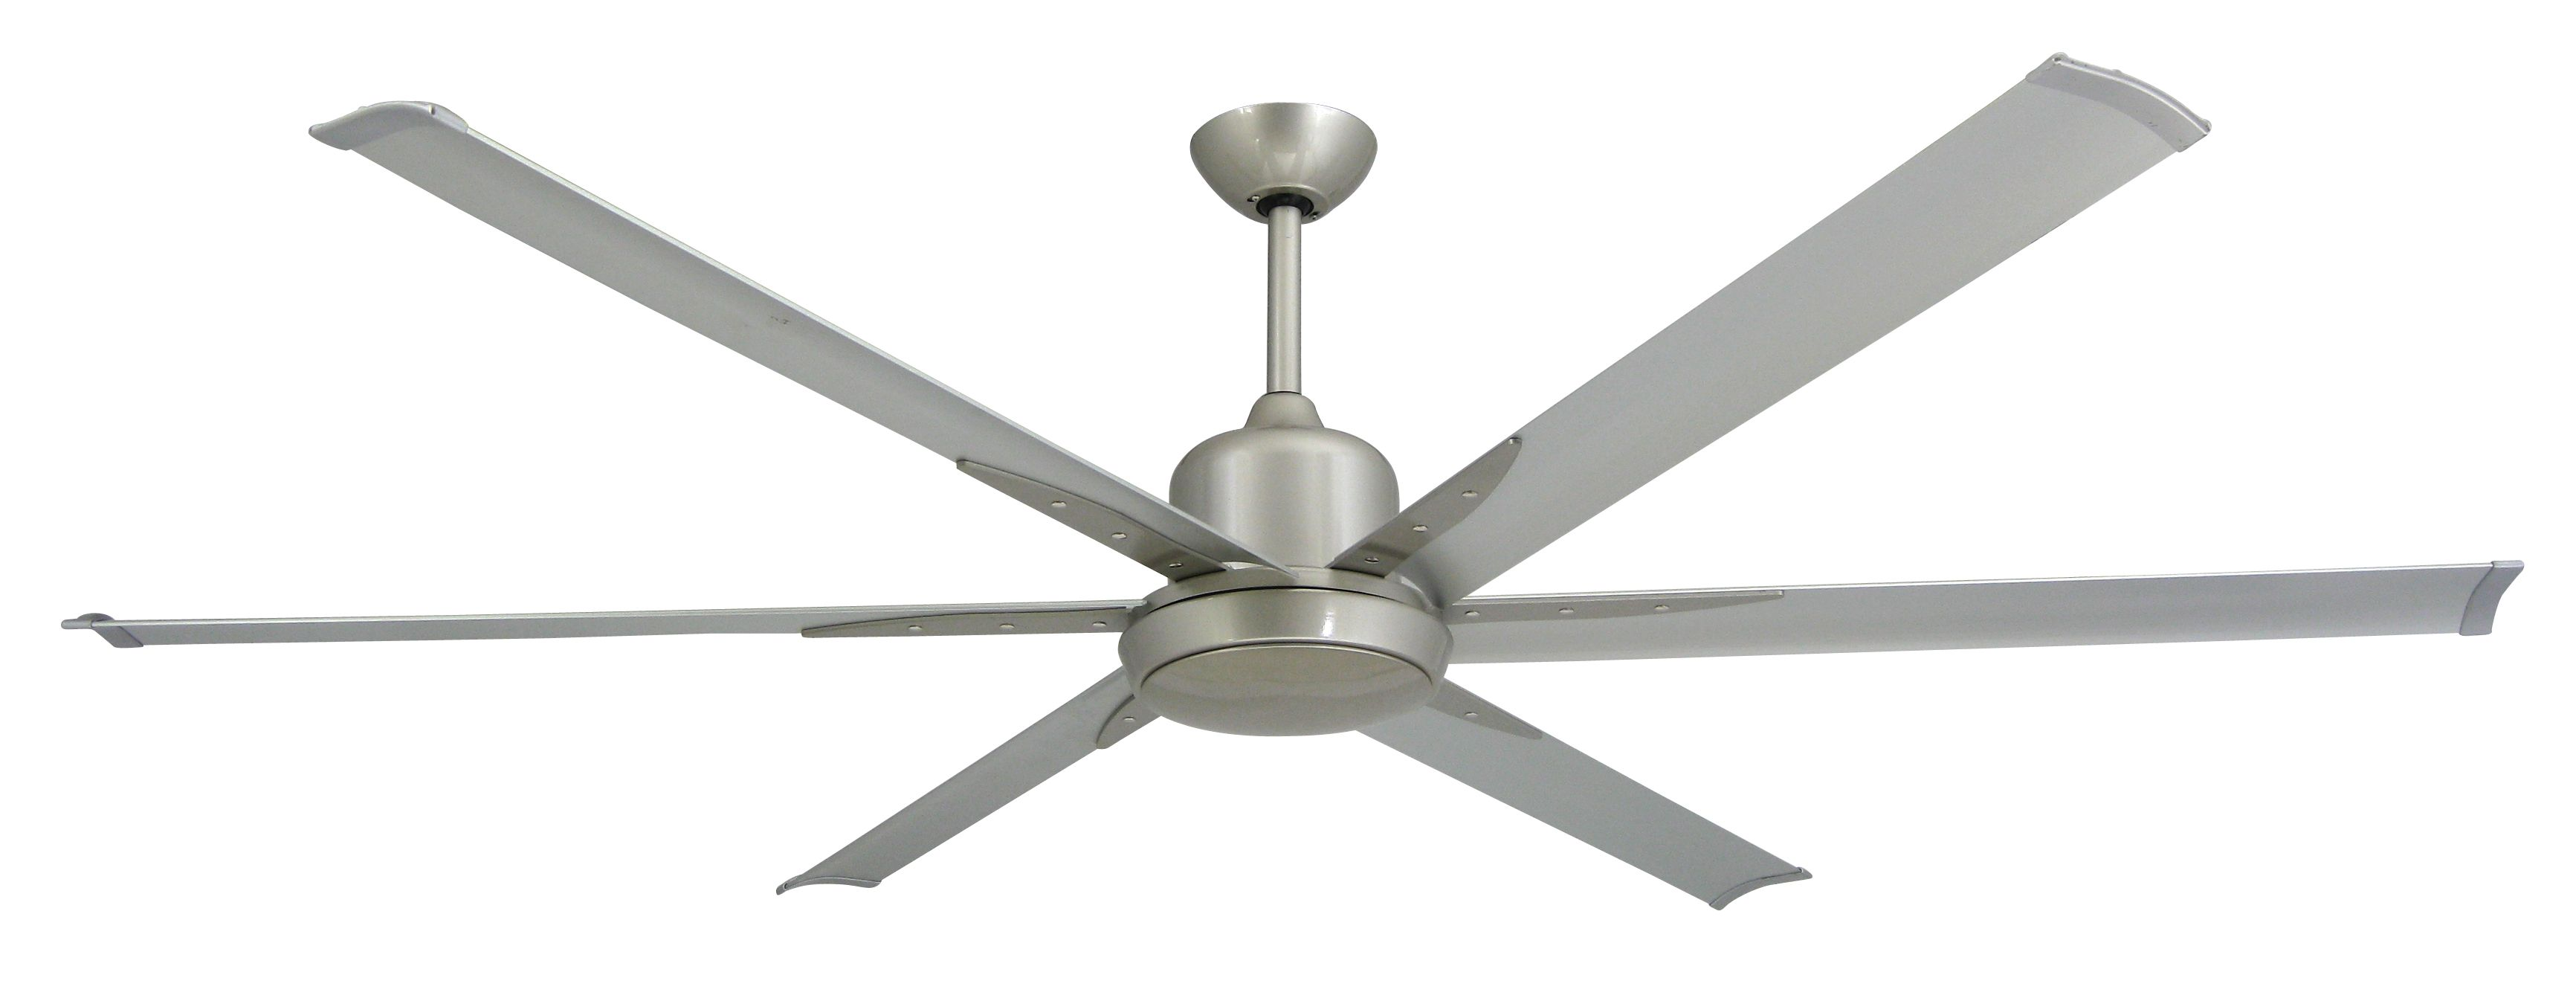 inch get breeze fans with fan light paint modern ceiling ceilings harbor home inspired design